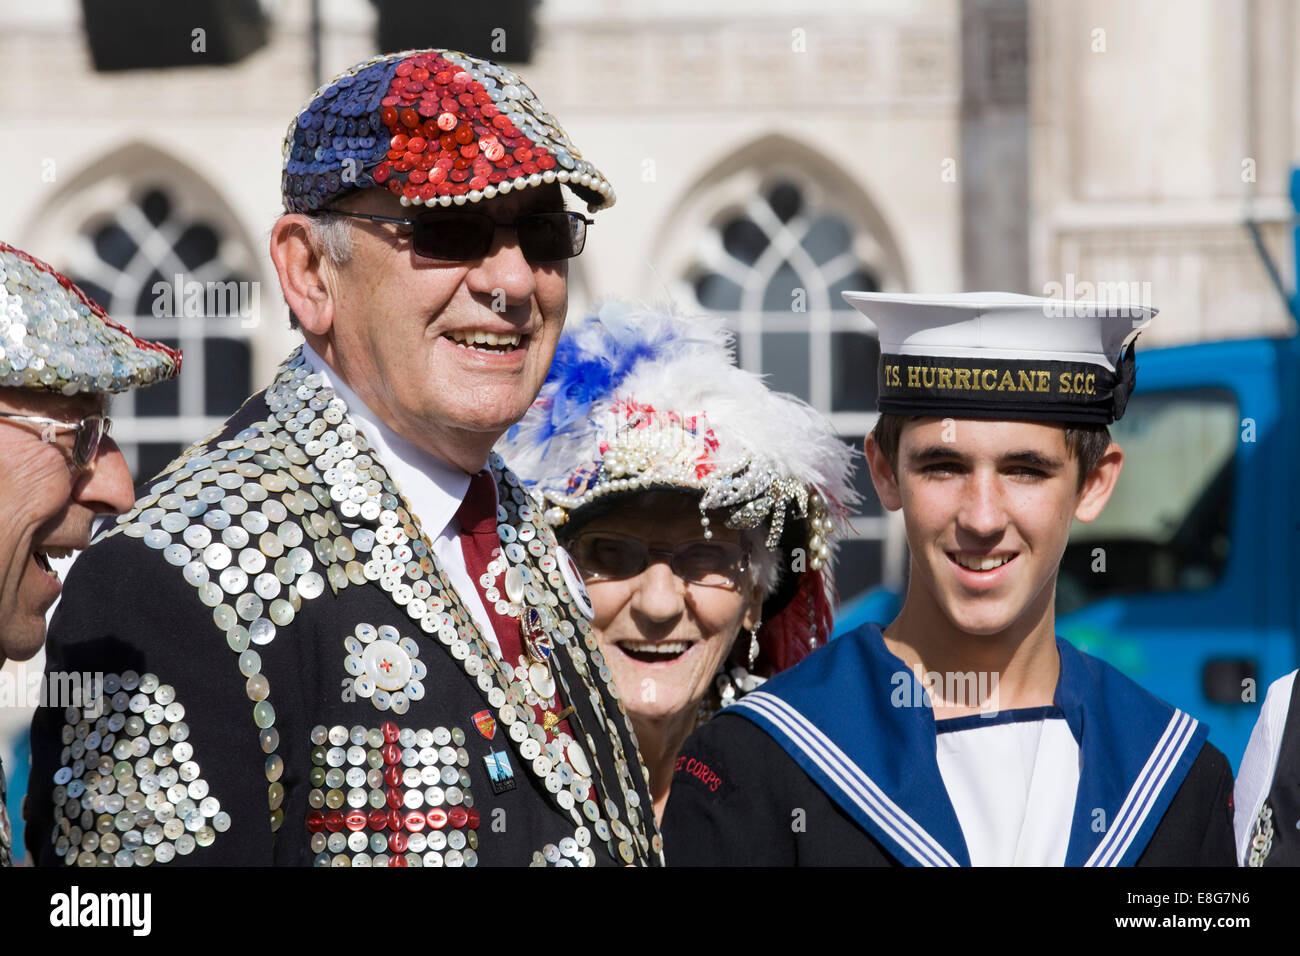 Pearly Kings and Queens known as pearlies London England - Stock Image